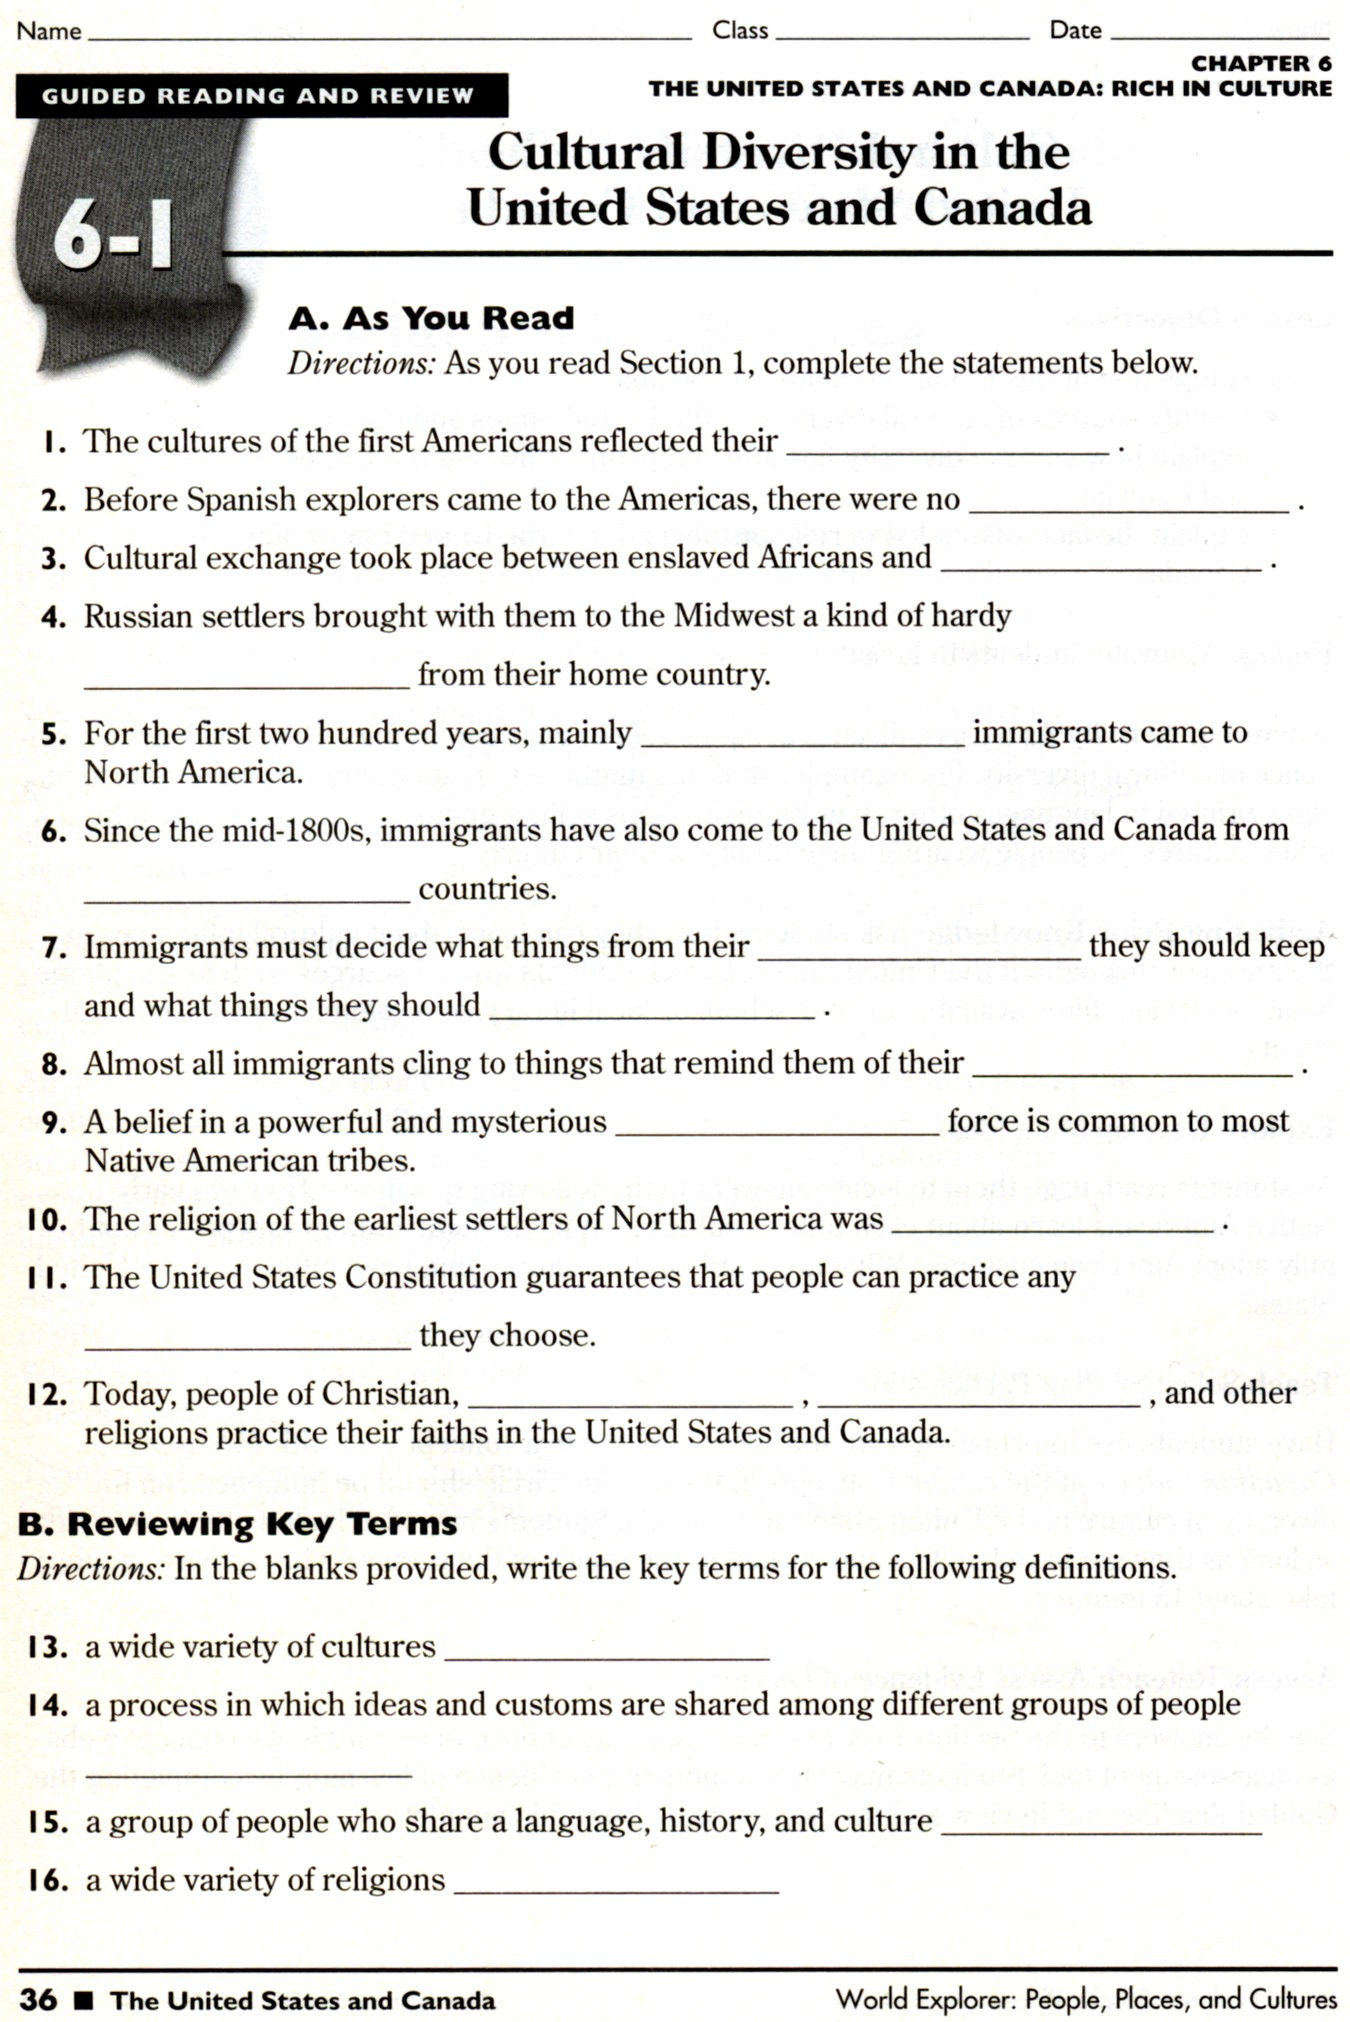 7th Grade World History Worksheets 9th Grade World History Worksheets